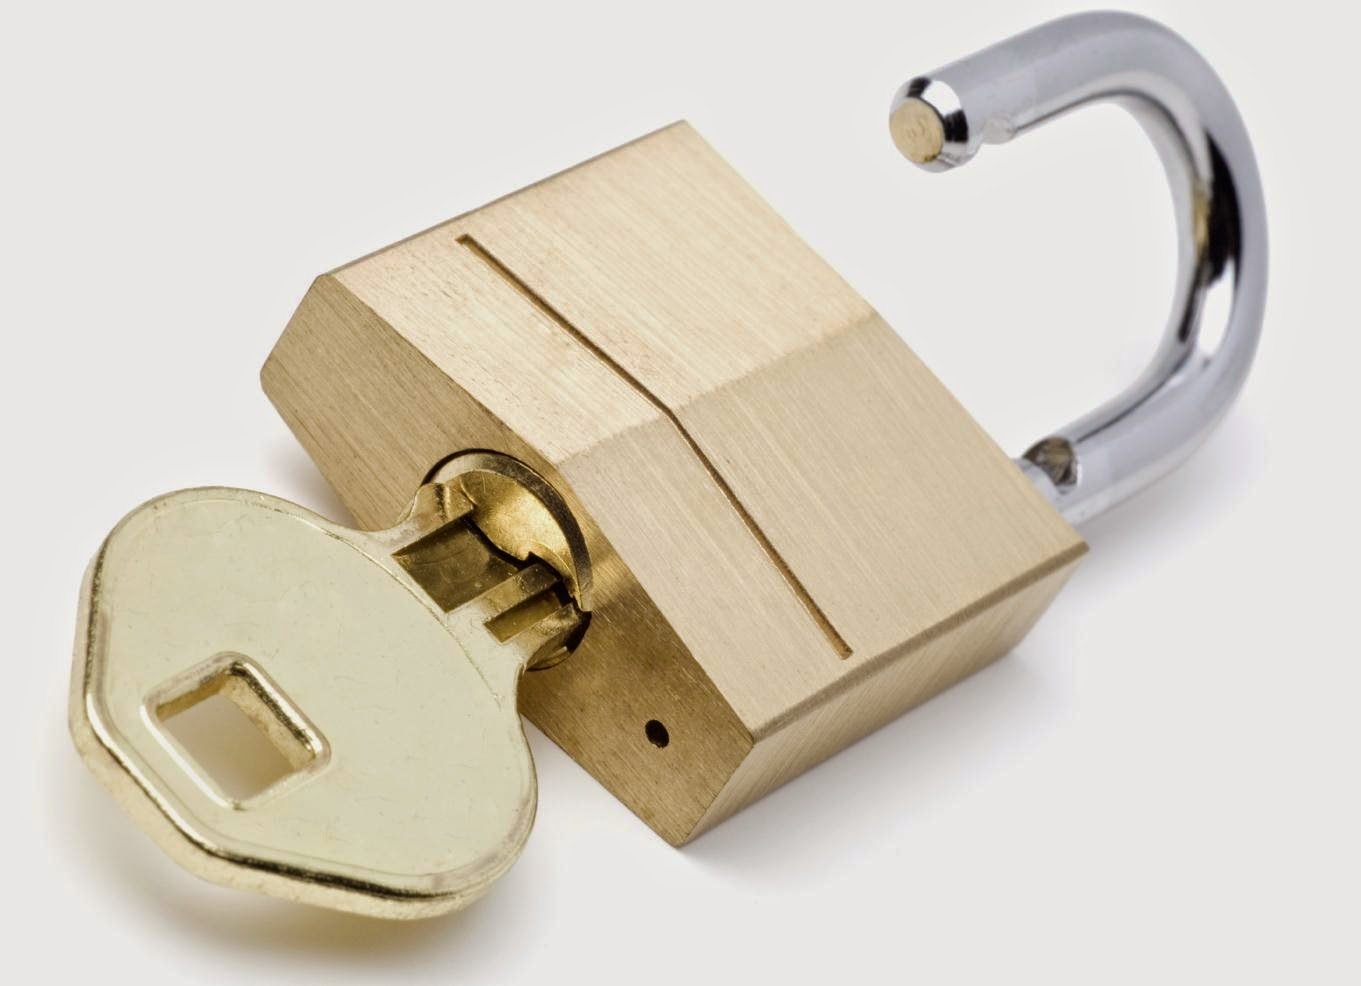 spokane-washington-locksmith-locks